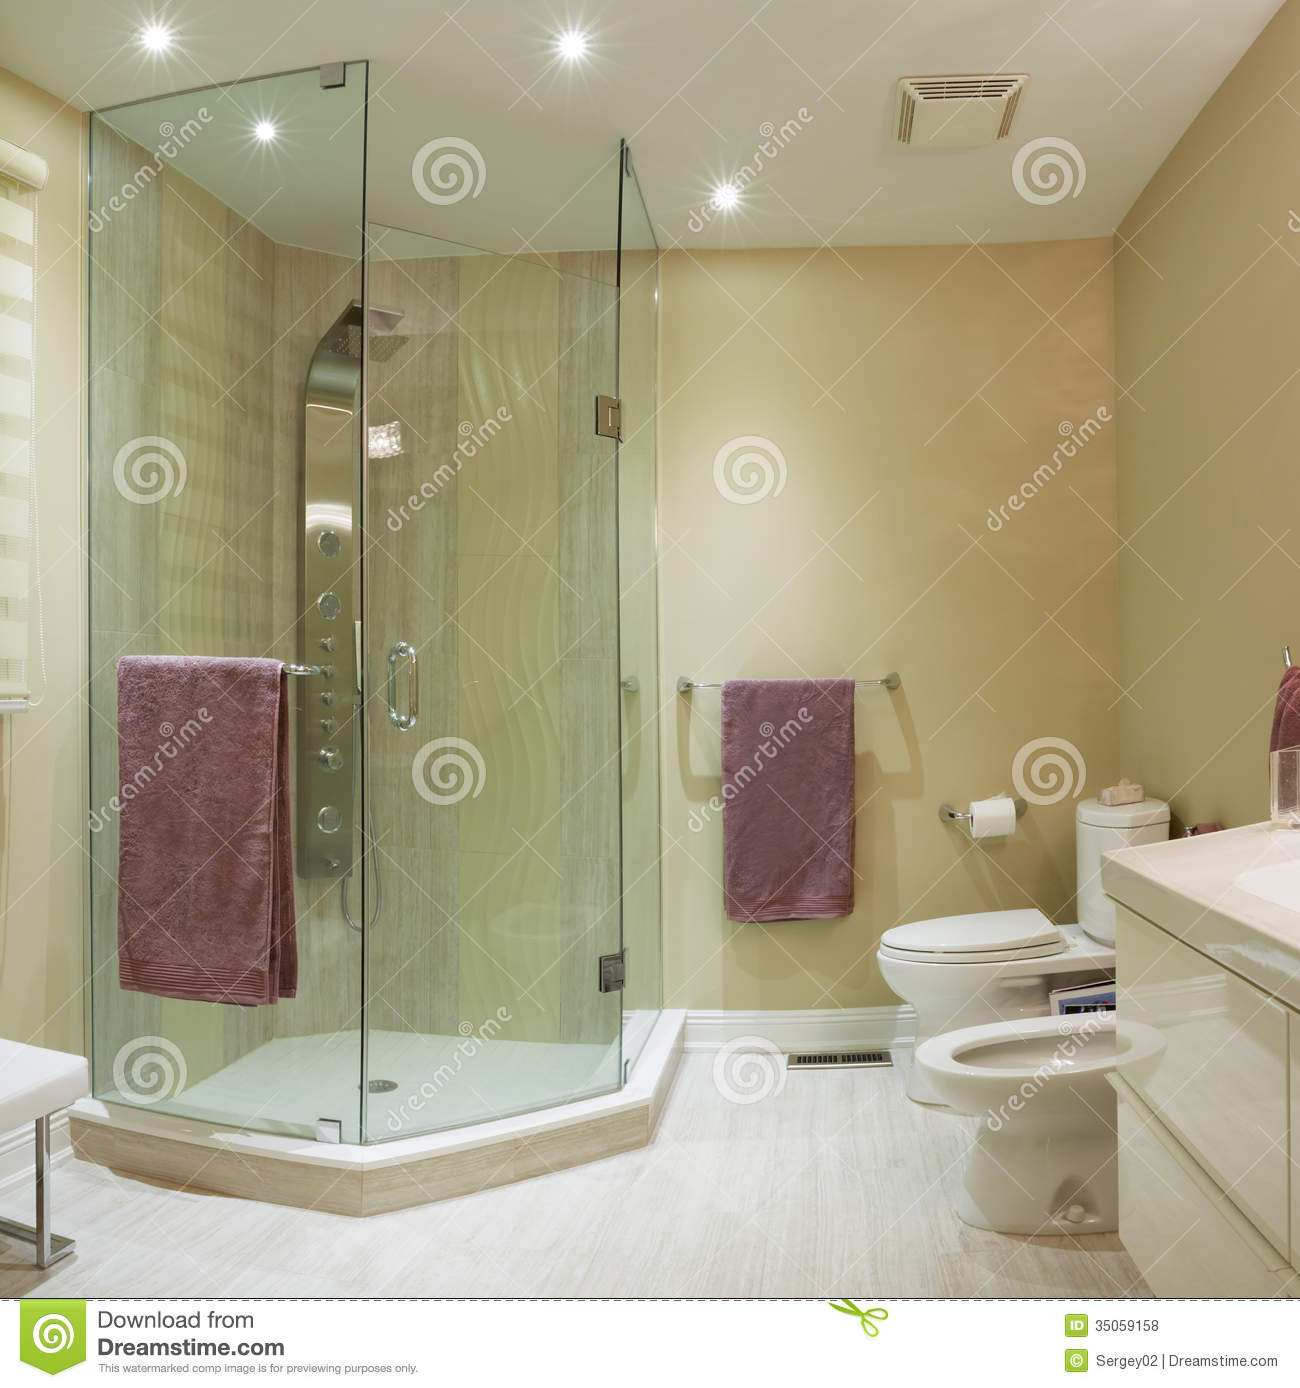 Interior design royalty free stock photos image 35059158 for House simple restroom design